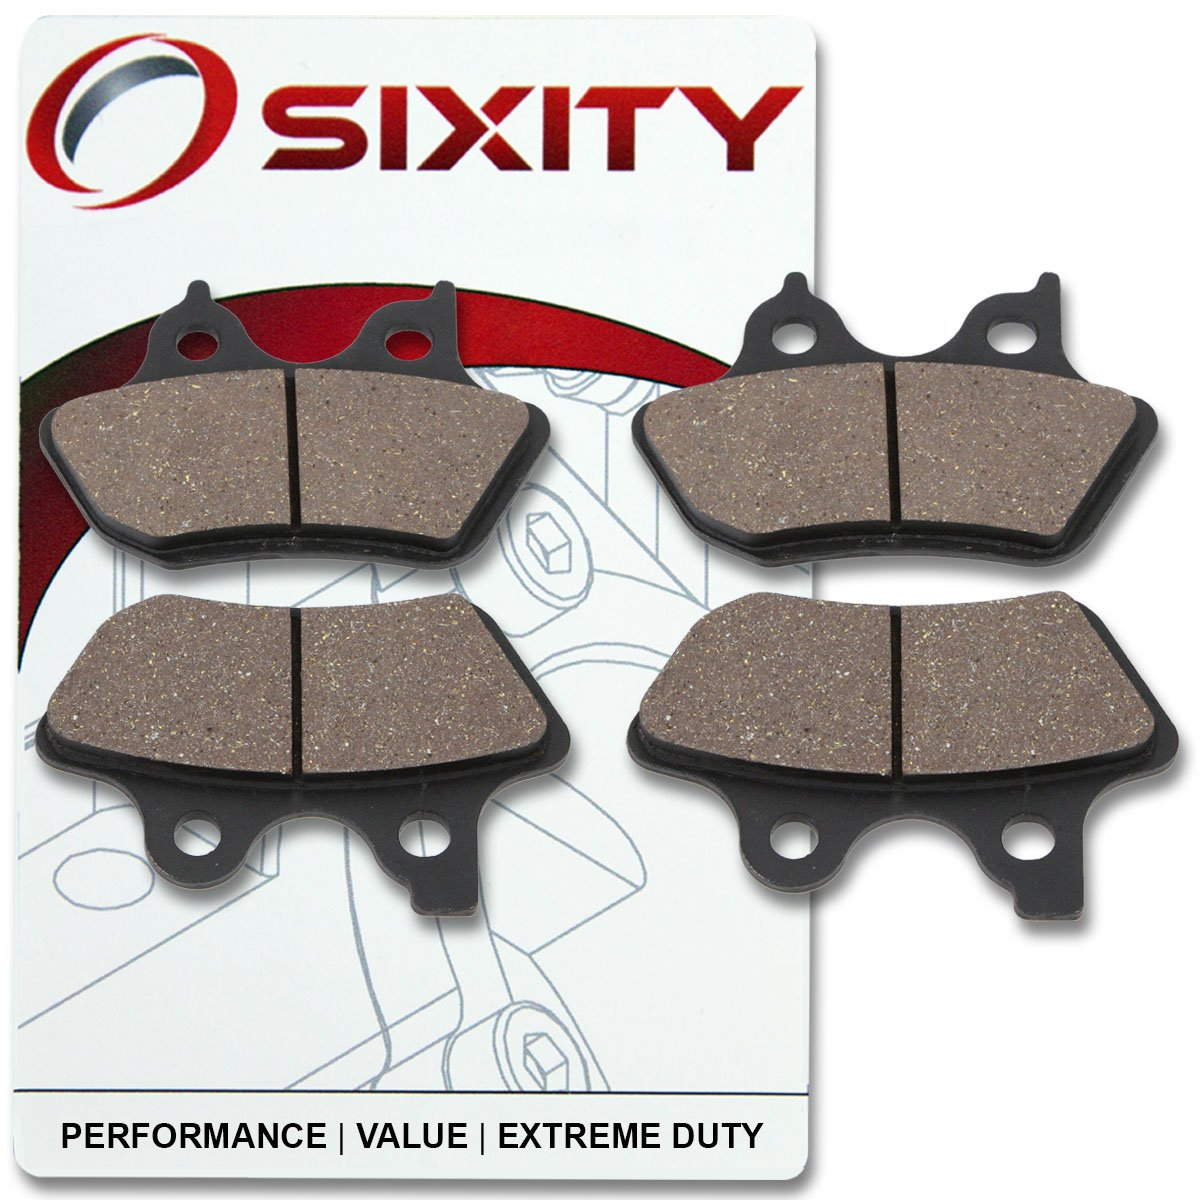 4. Sixity Front Ceramic Brake Pads 2000-2006 Harley Davidson FLHTCUI Electra Glide Ultra Classic Set Full Kit Complete